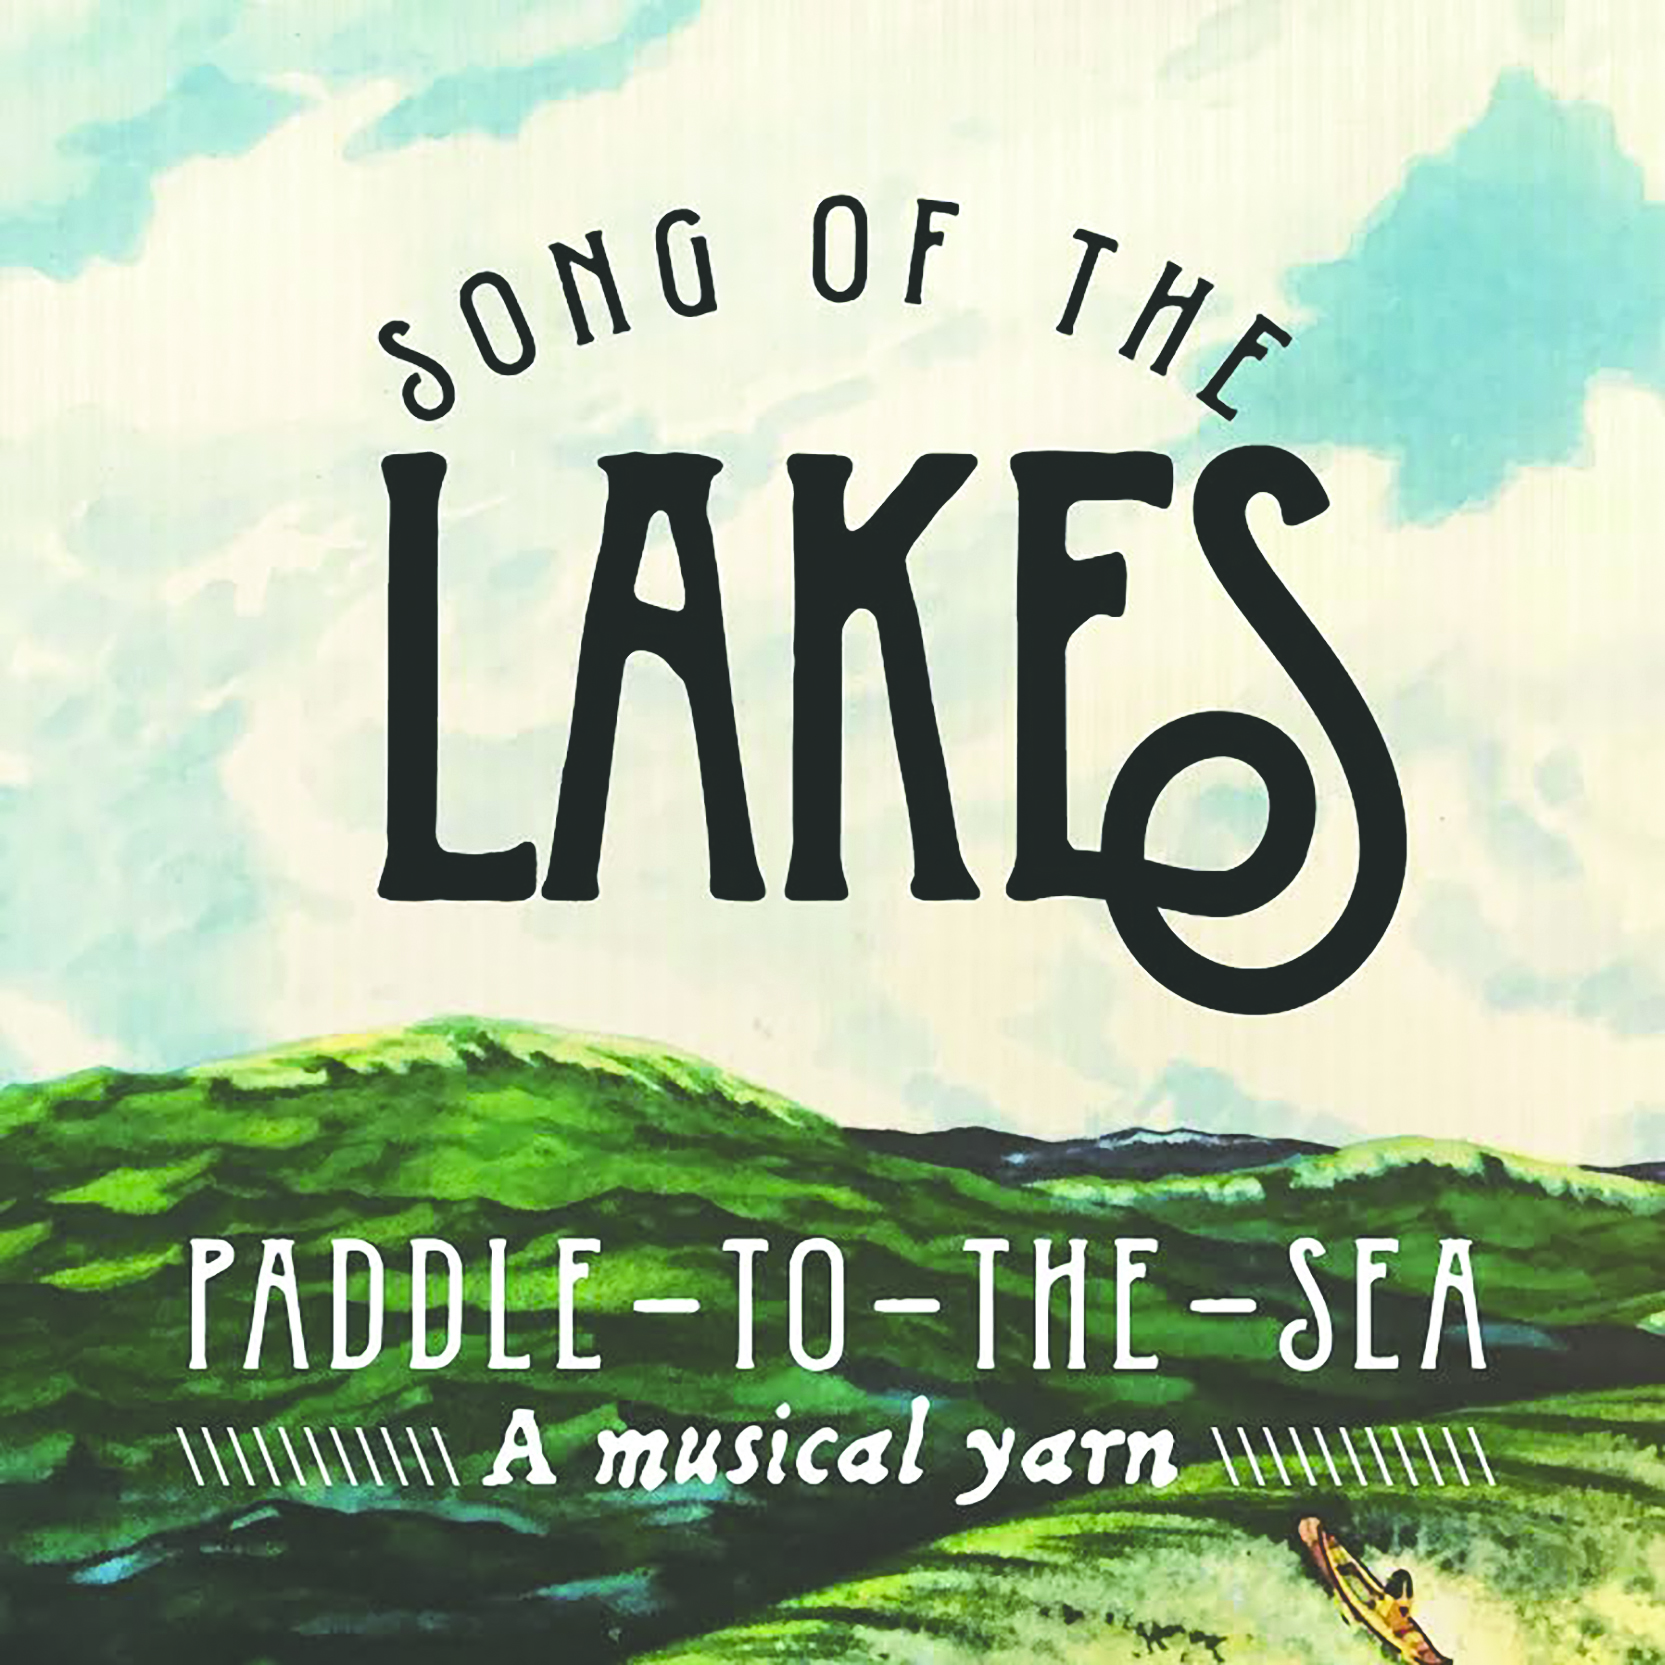 Paddle-to-the-Sea, a musical yarn released. Image courtesy of Song of the Lakes.